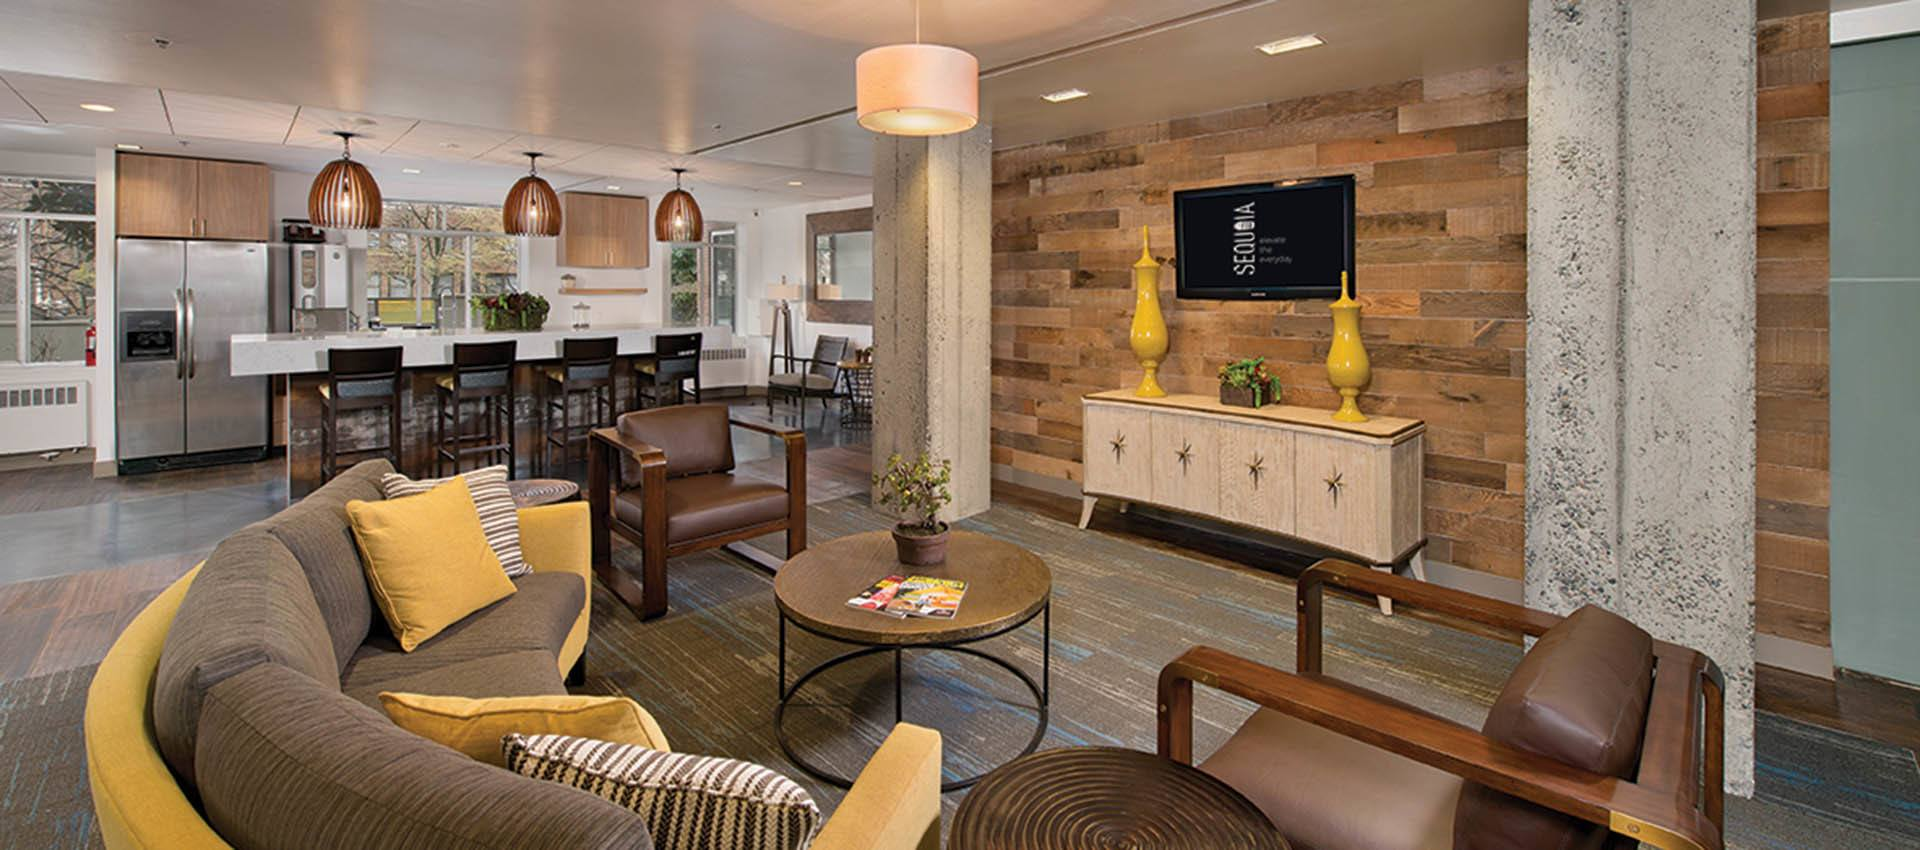 Lobby with Flat screen TV on the wall at The Mill at First Hill in Seattle , WA